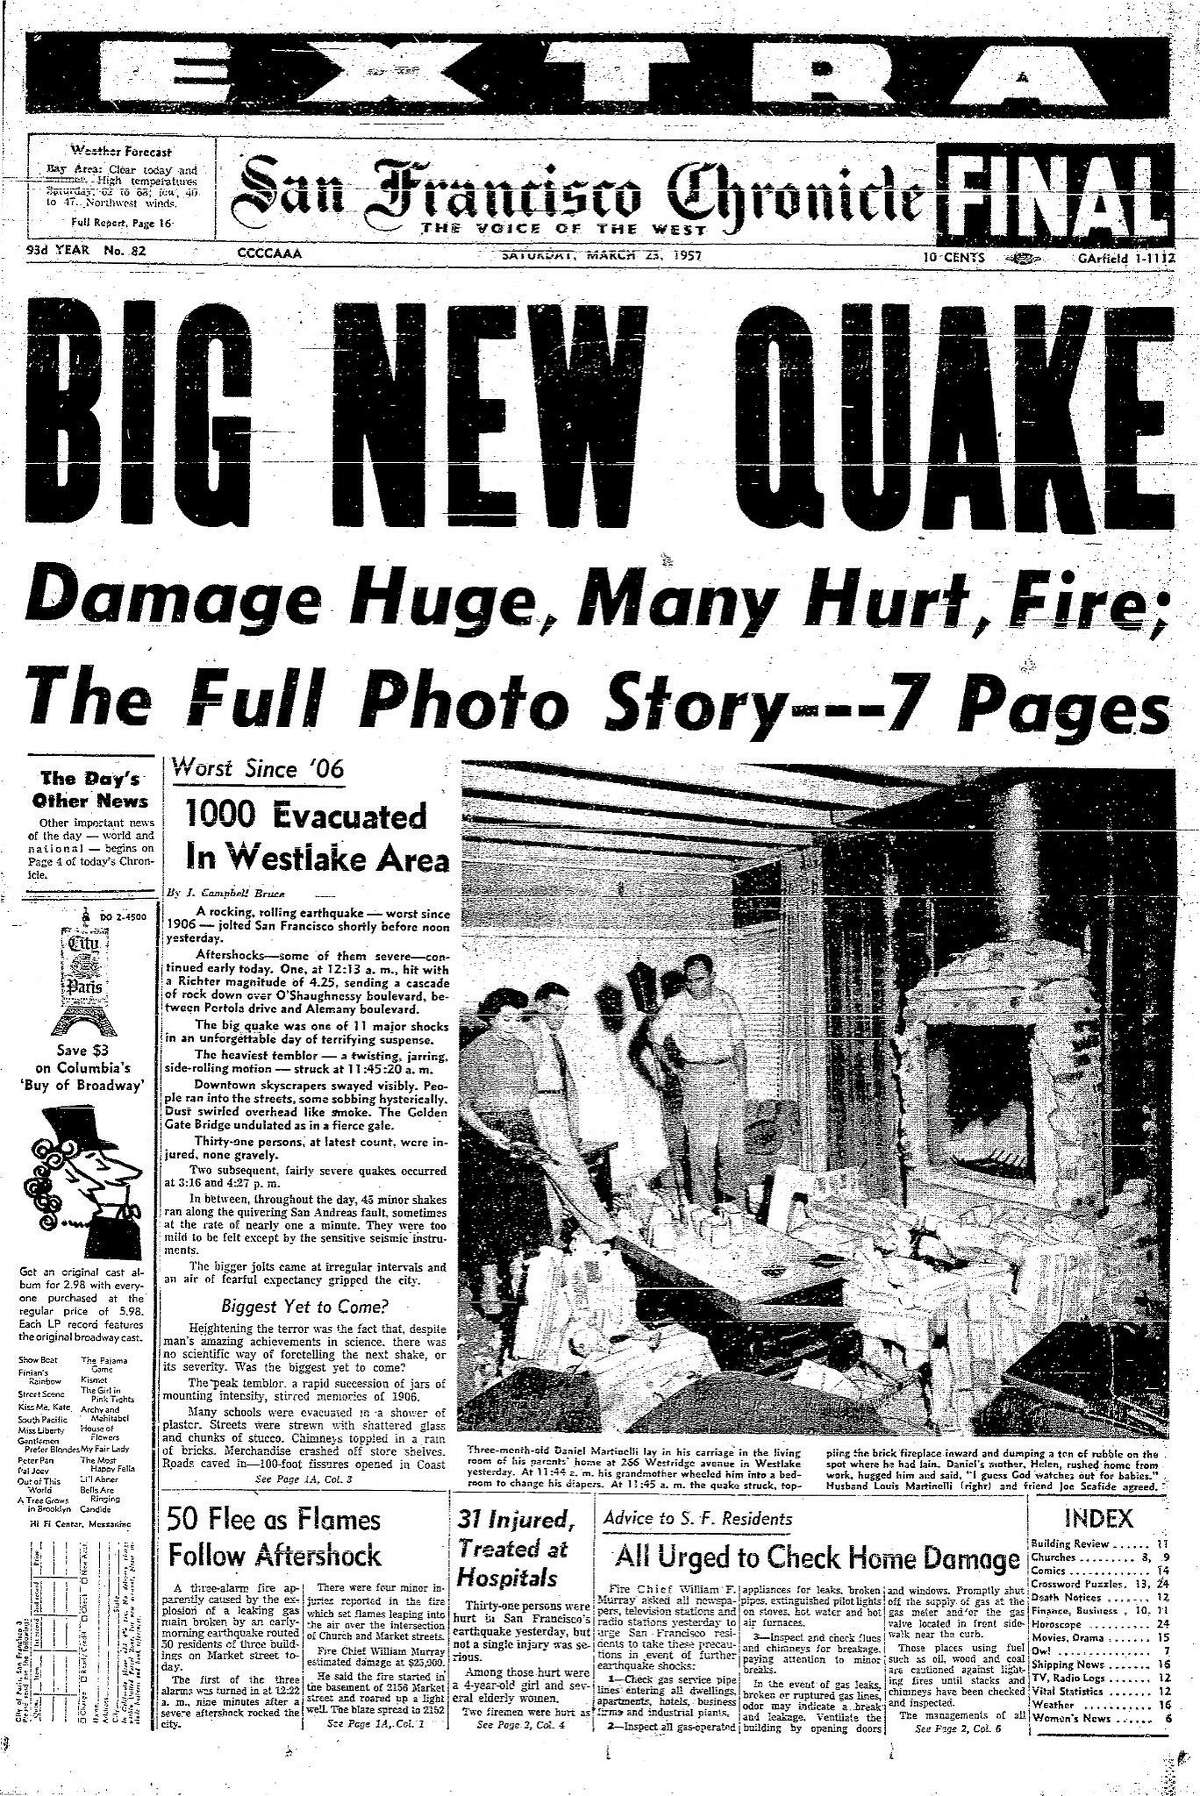 The Chronicle front page March 23, 1957, the day after the 5.3 did widespread damage